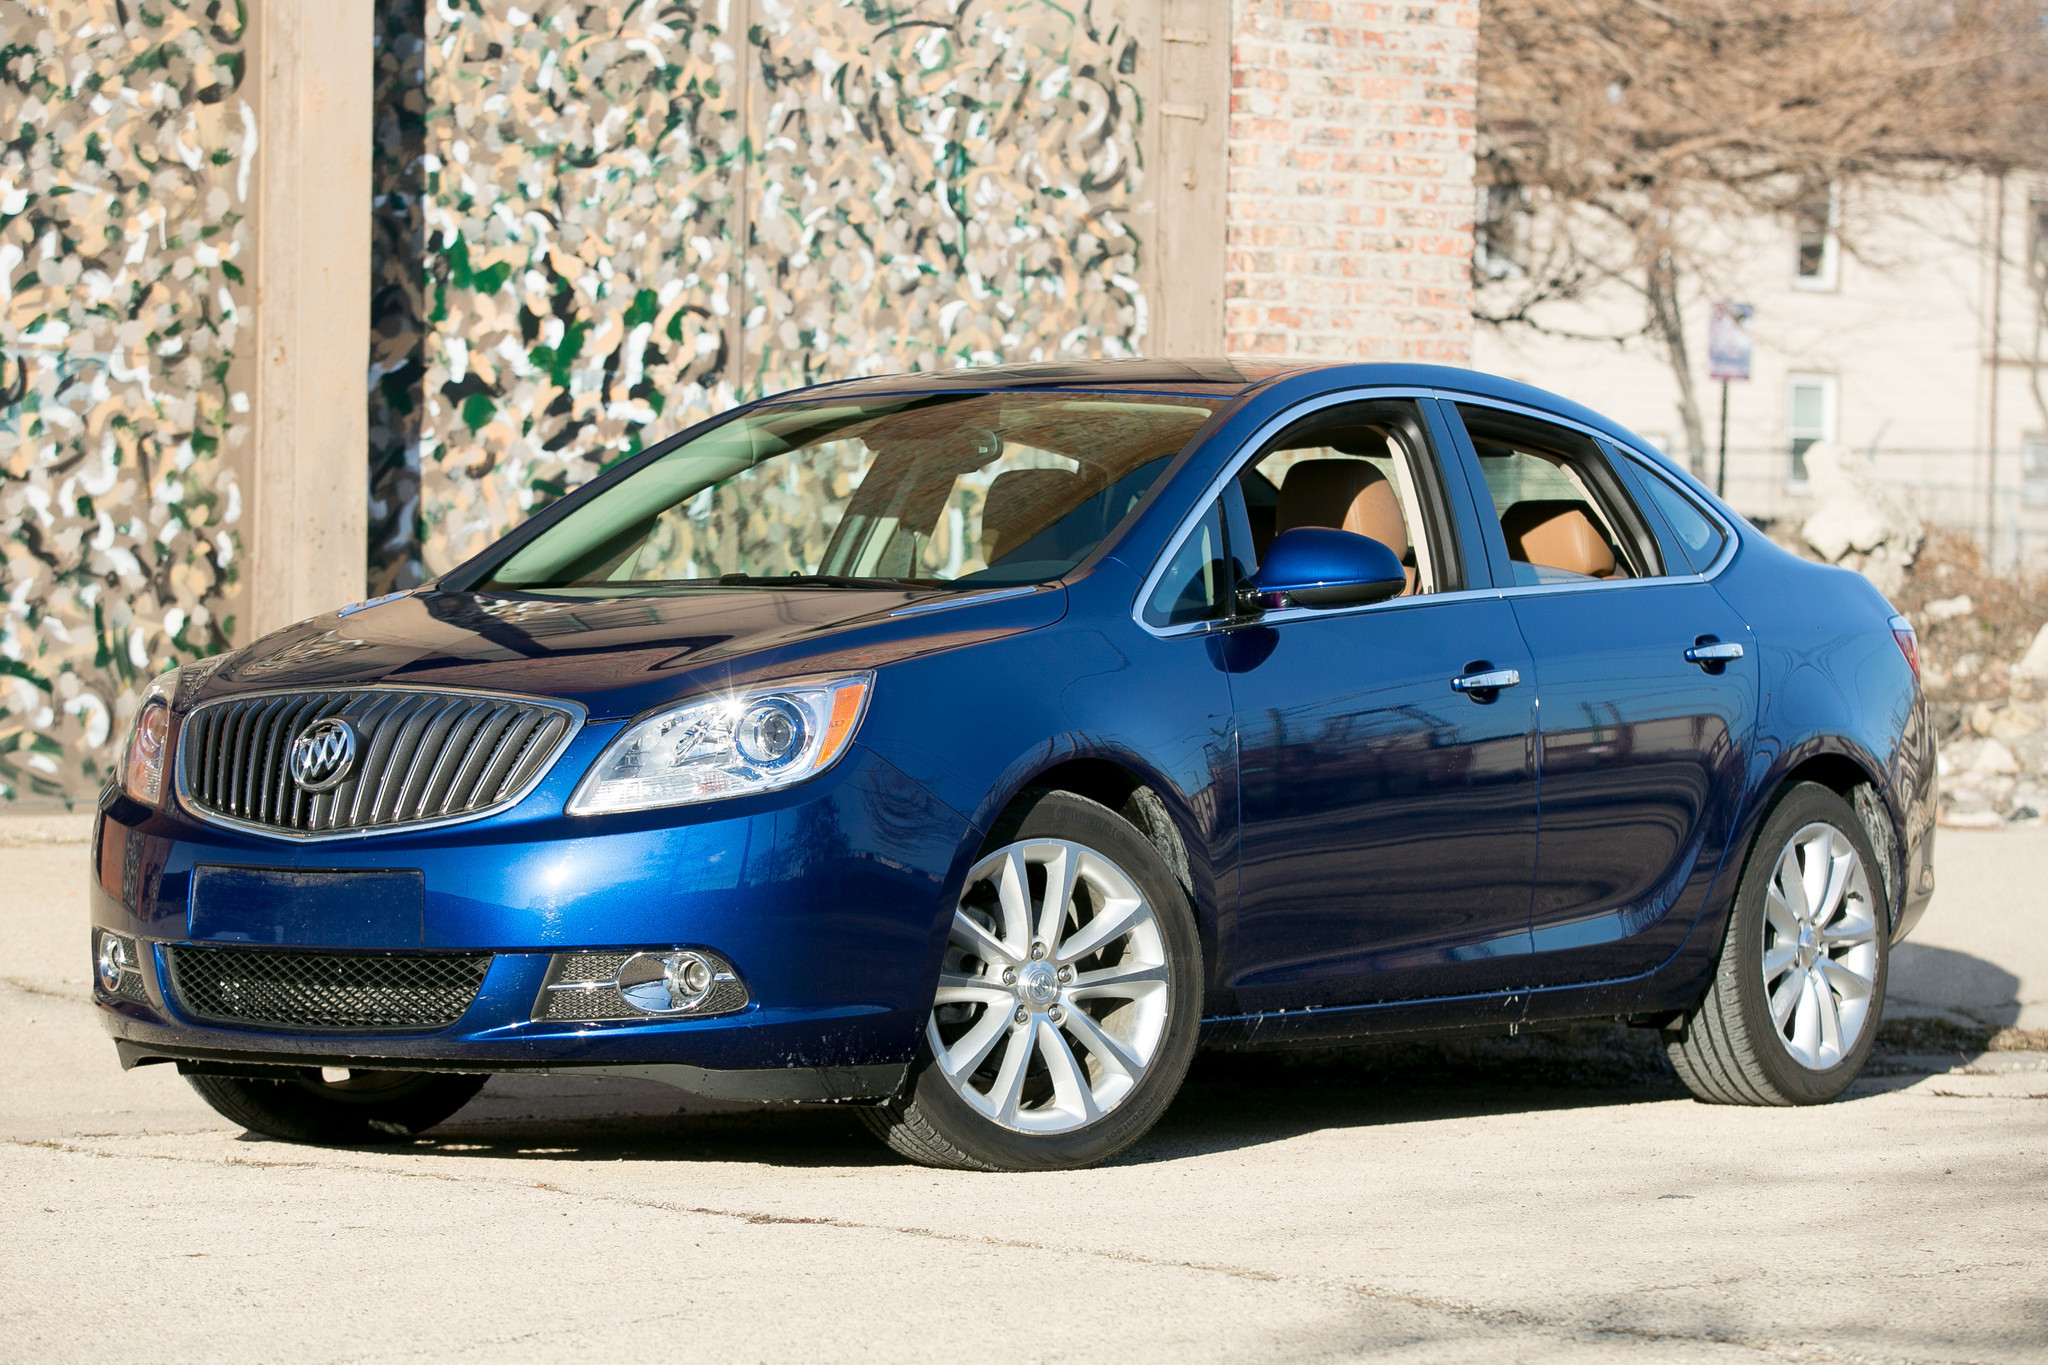 2013 Buick Verano turbo: Run silent, run fast - Daily Press